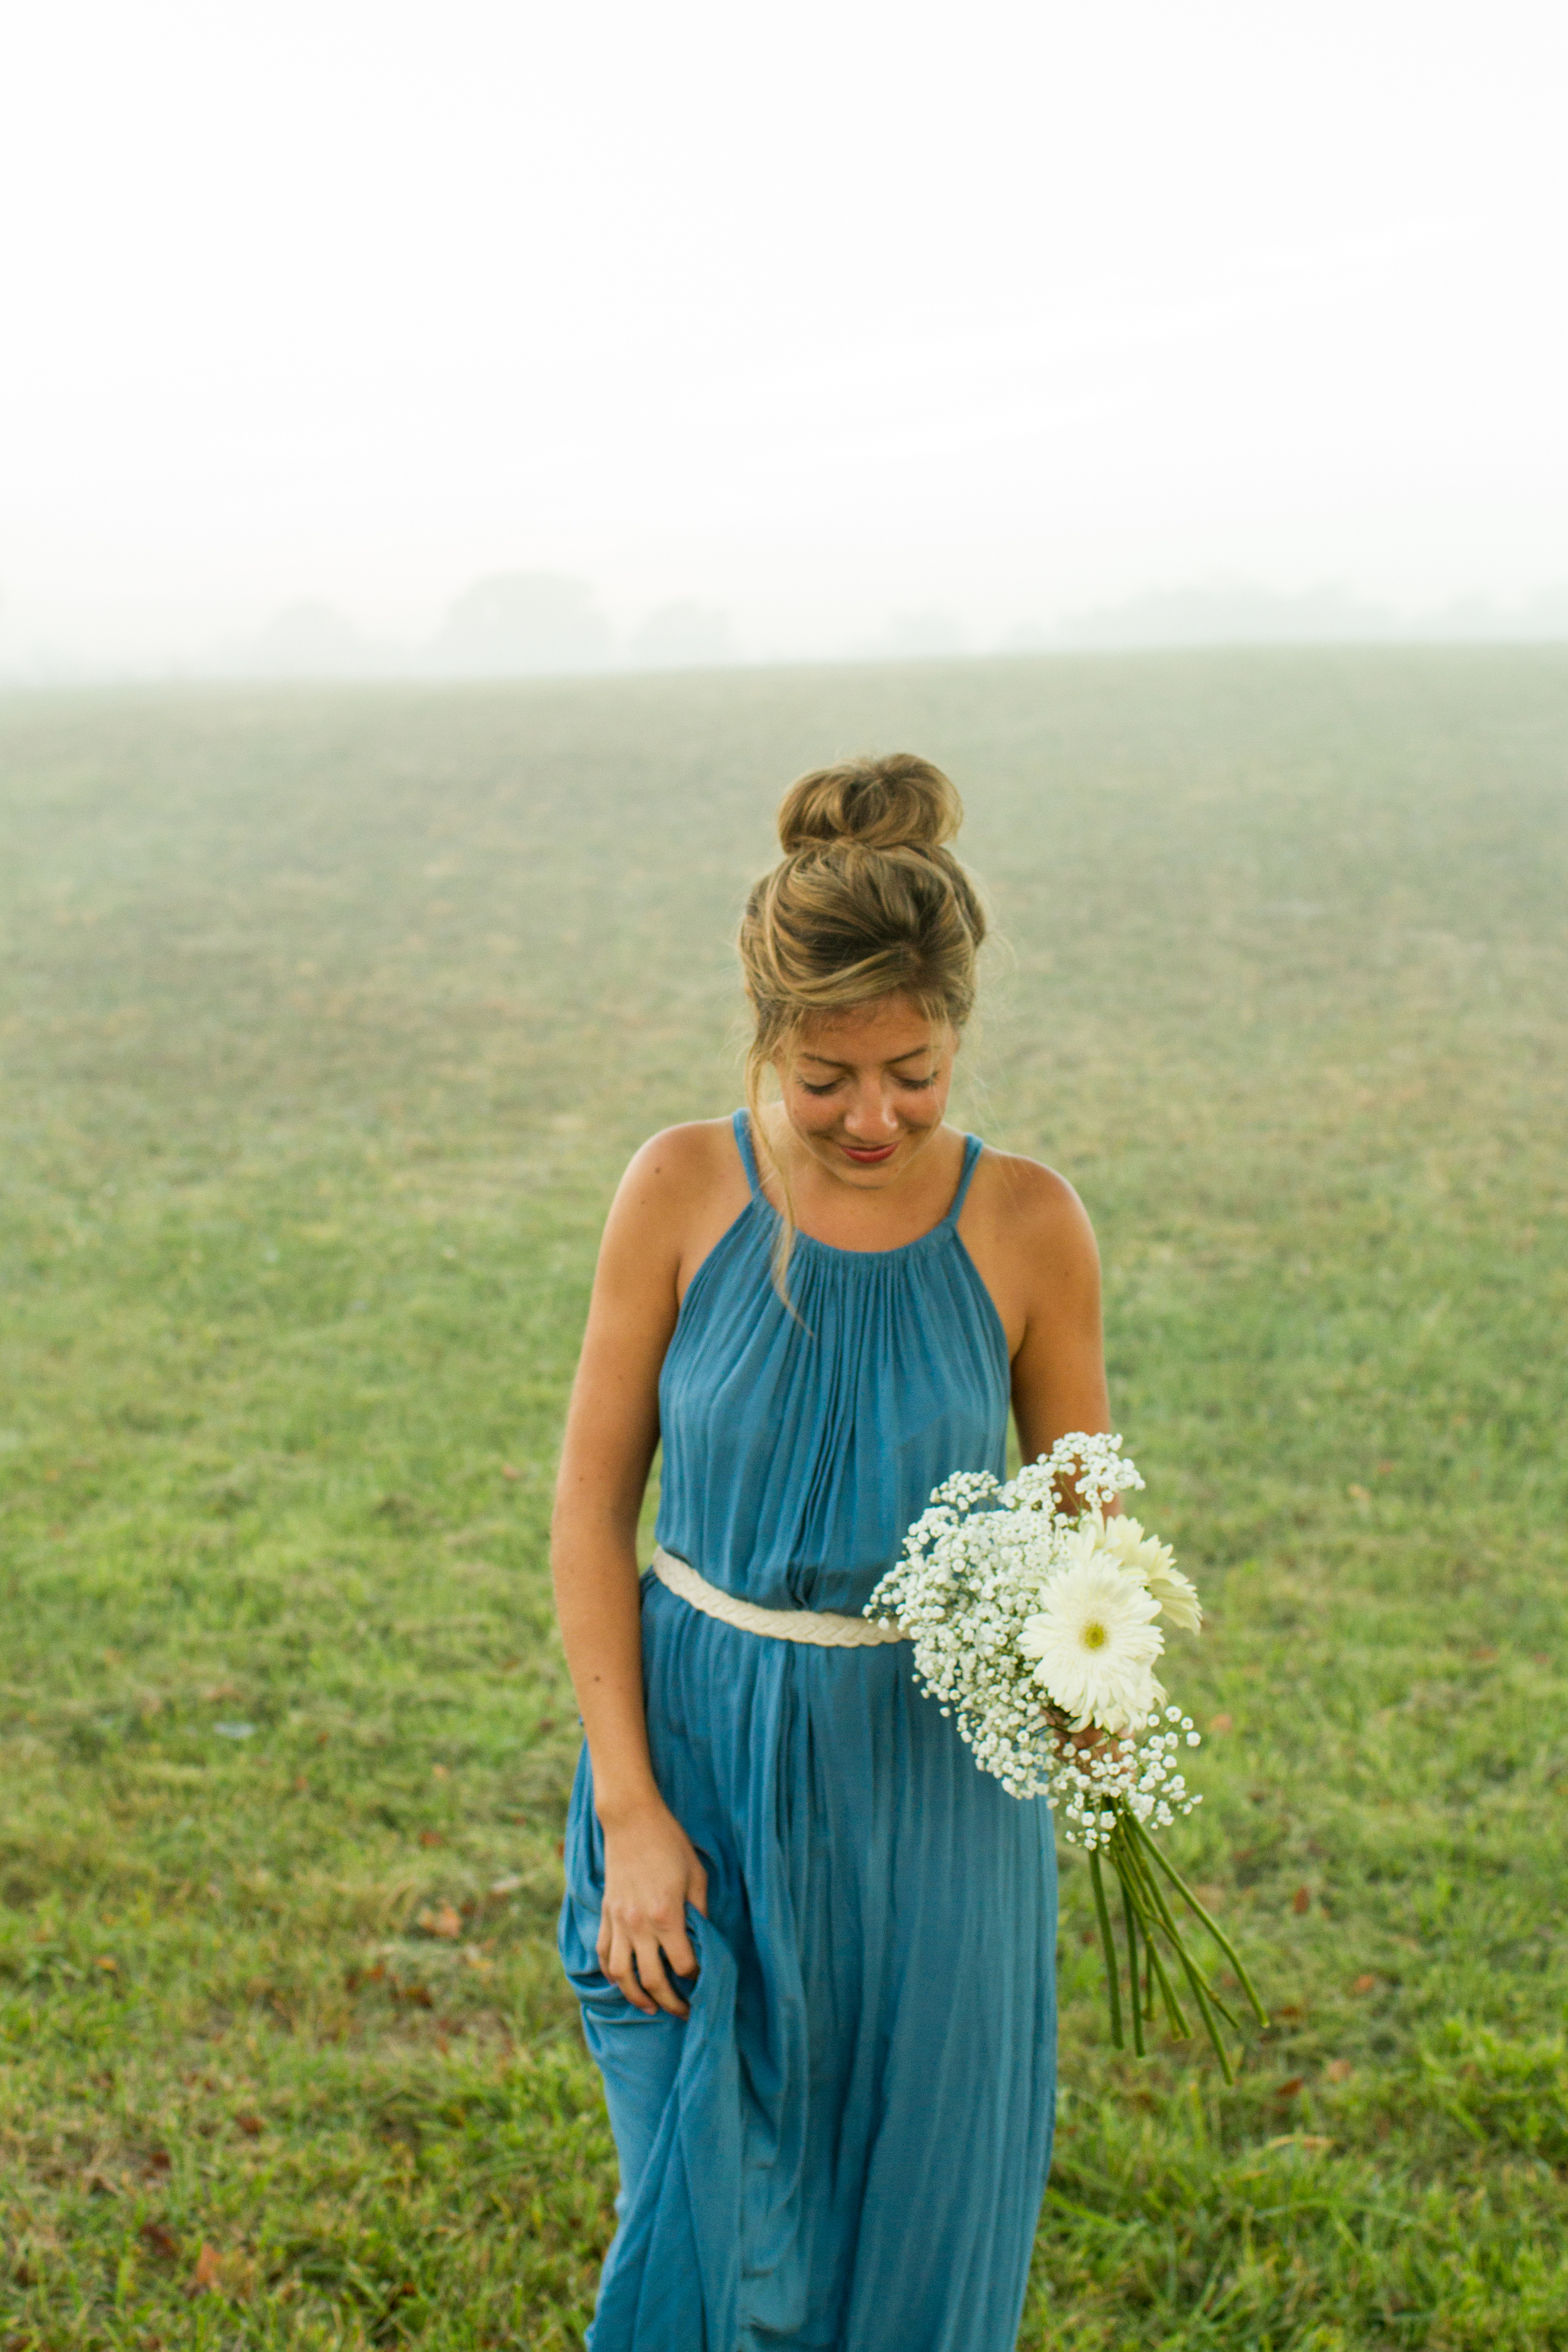 Wedding photographer in Columbia SC | Lorin Marie Photography